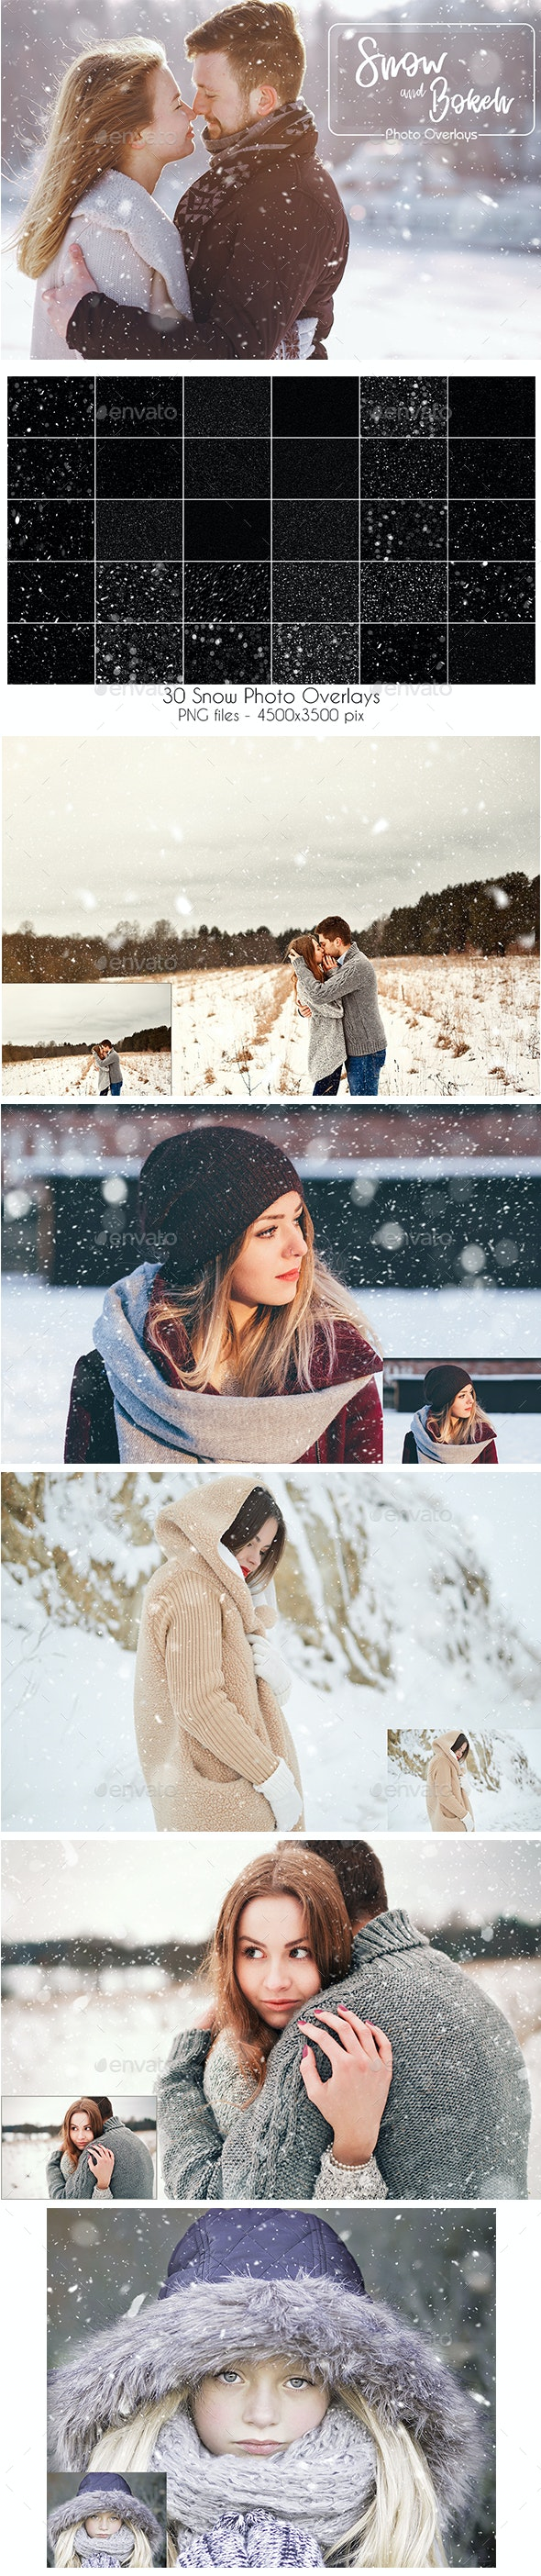 Snow and Bokeh Photo Overlays - Artistic Photo Templates